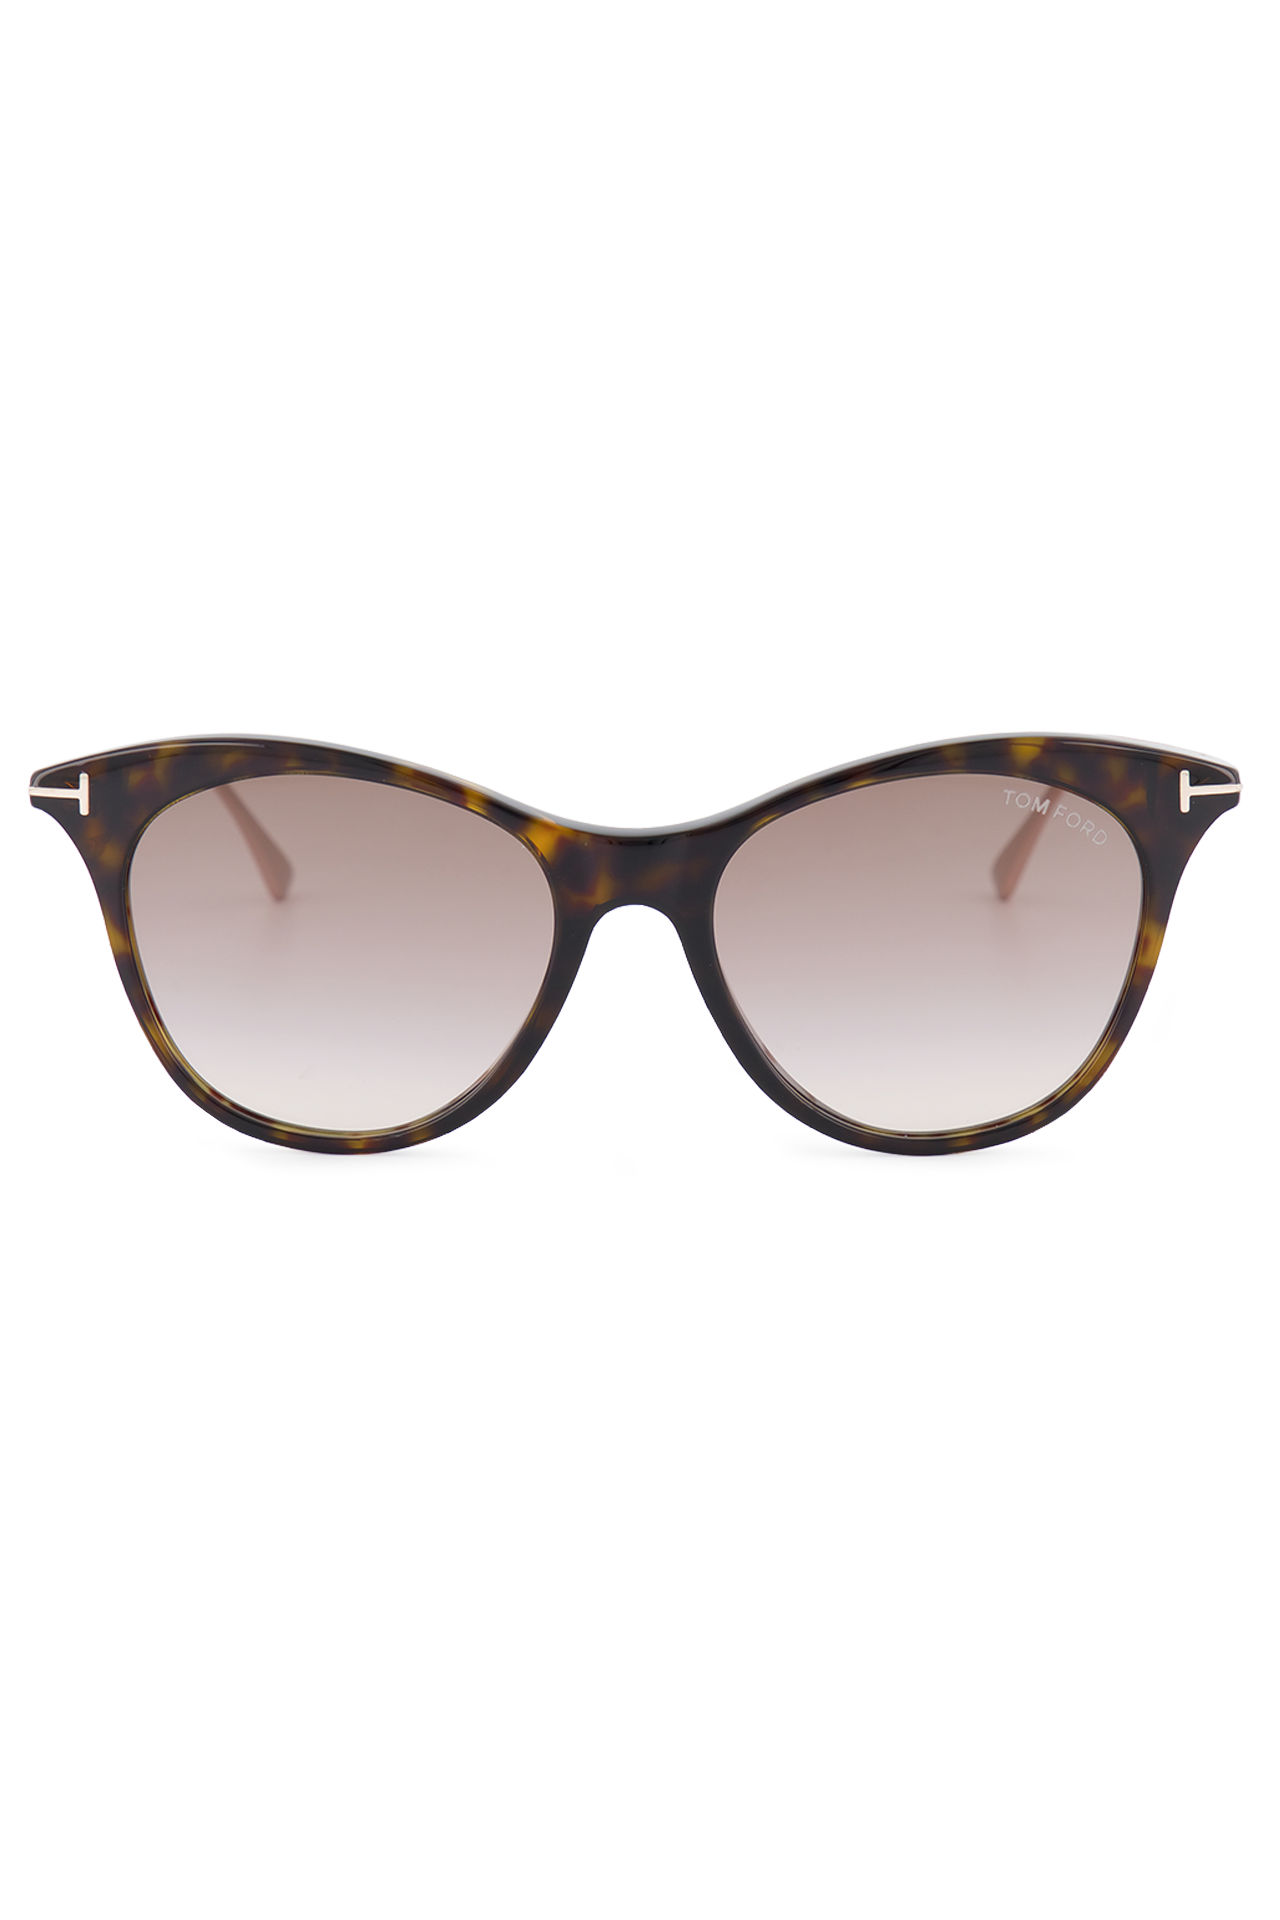 Front view image of Tom Ford Women's Micaela Dark Havana Sunglasses